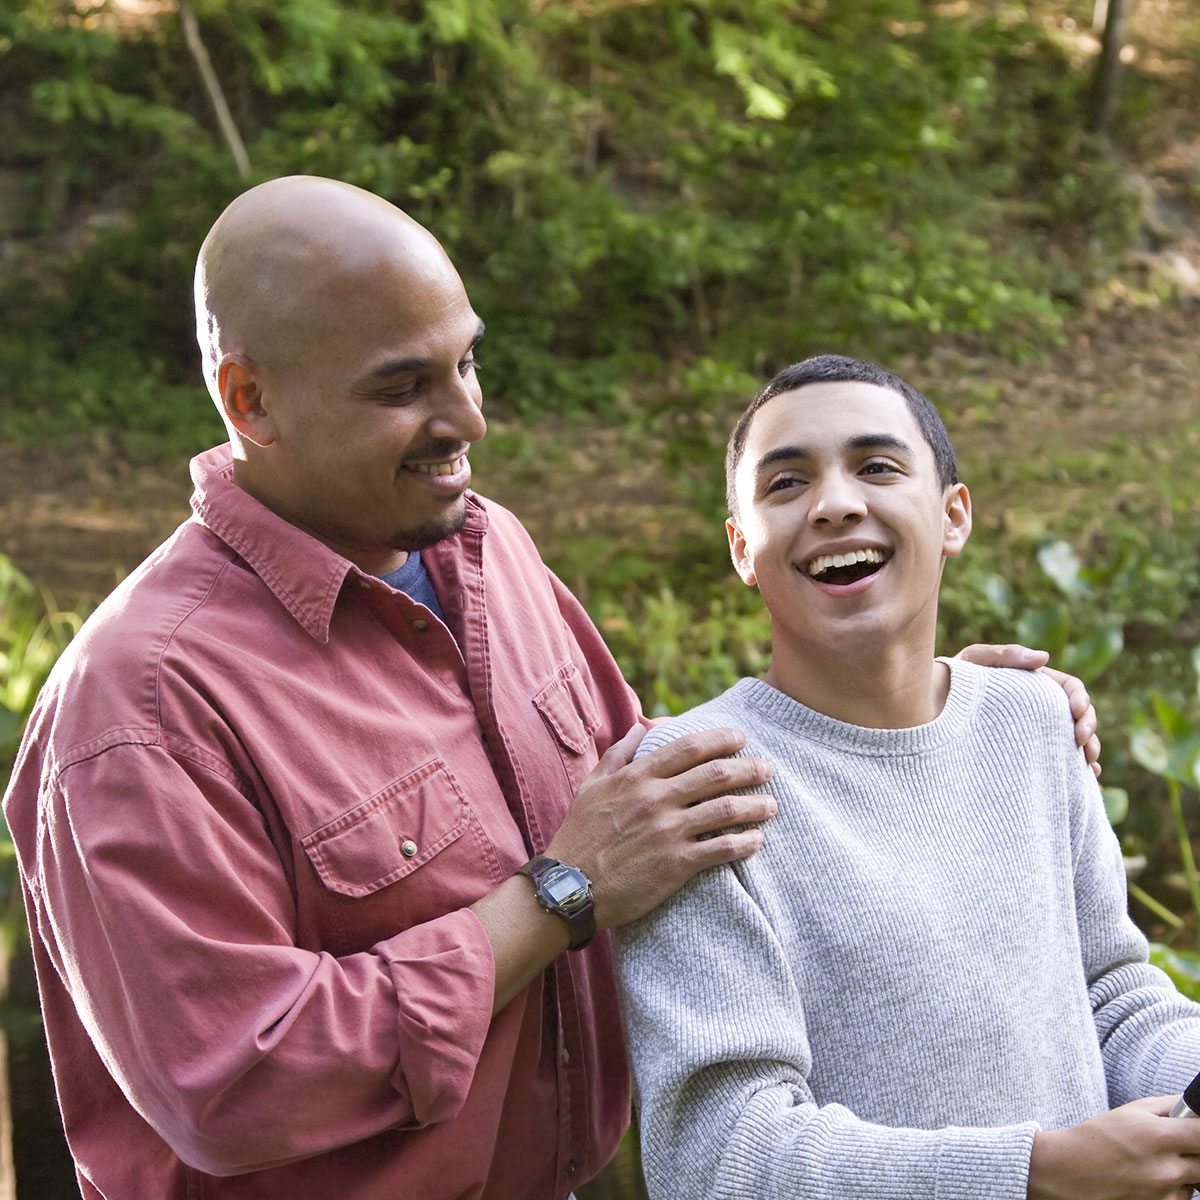 Image of happy Hispanic father with hands on the shoulder of his laughing son